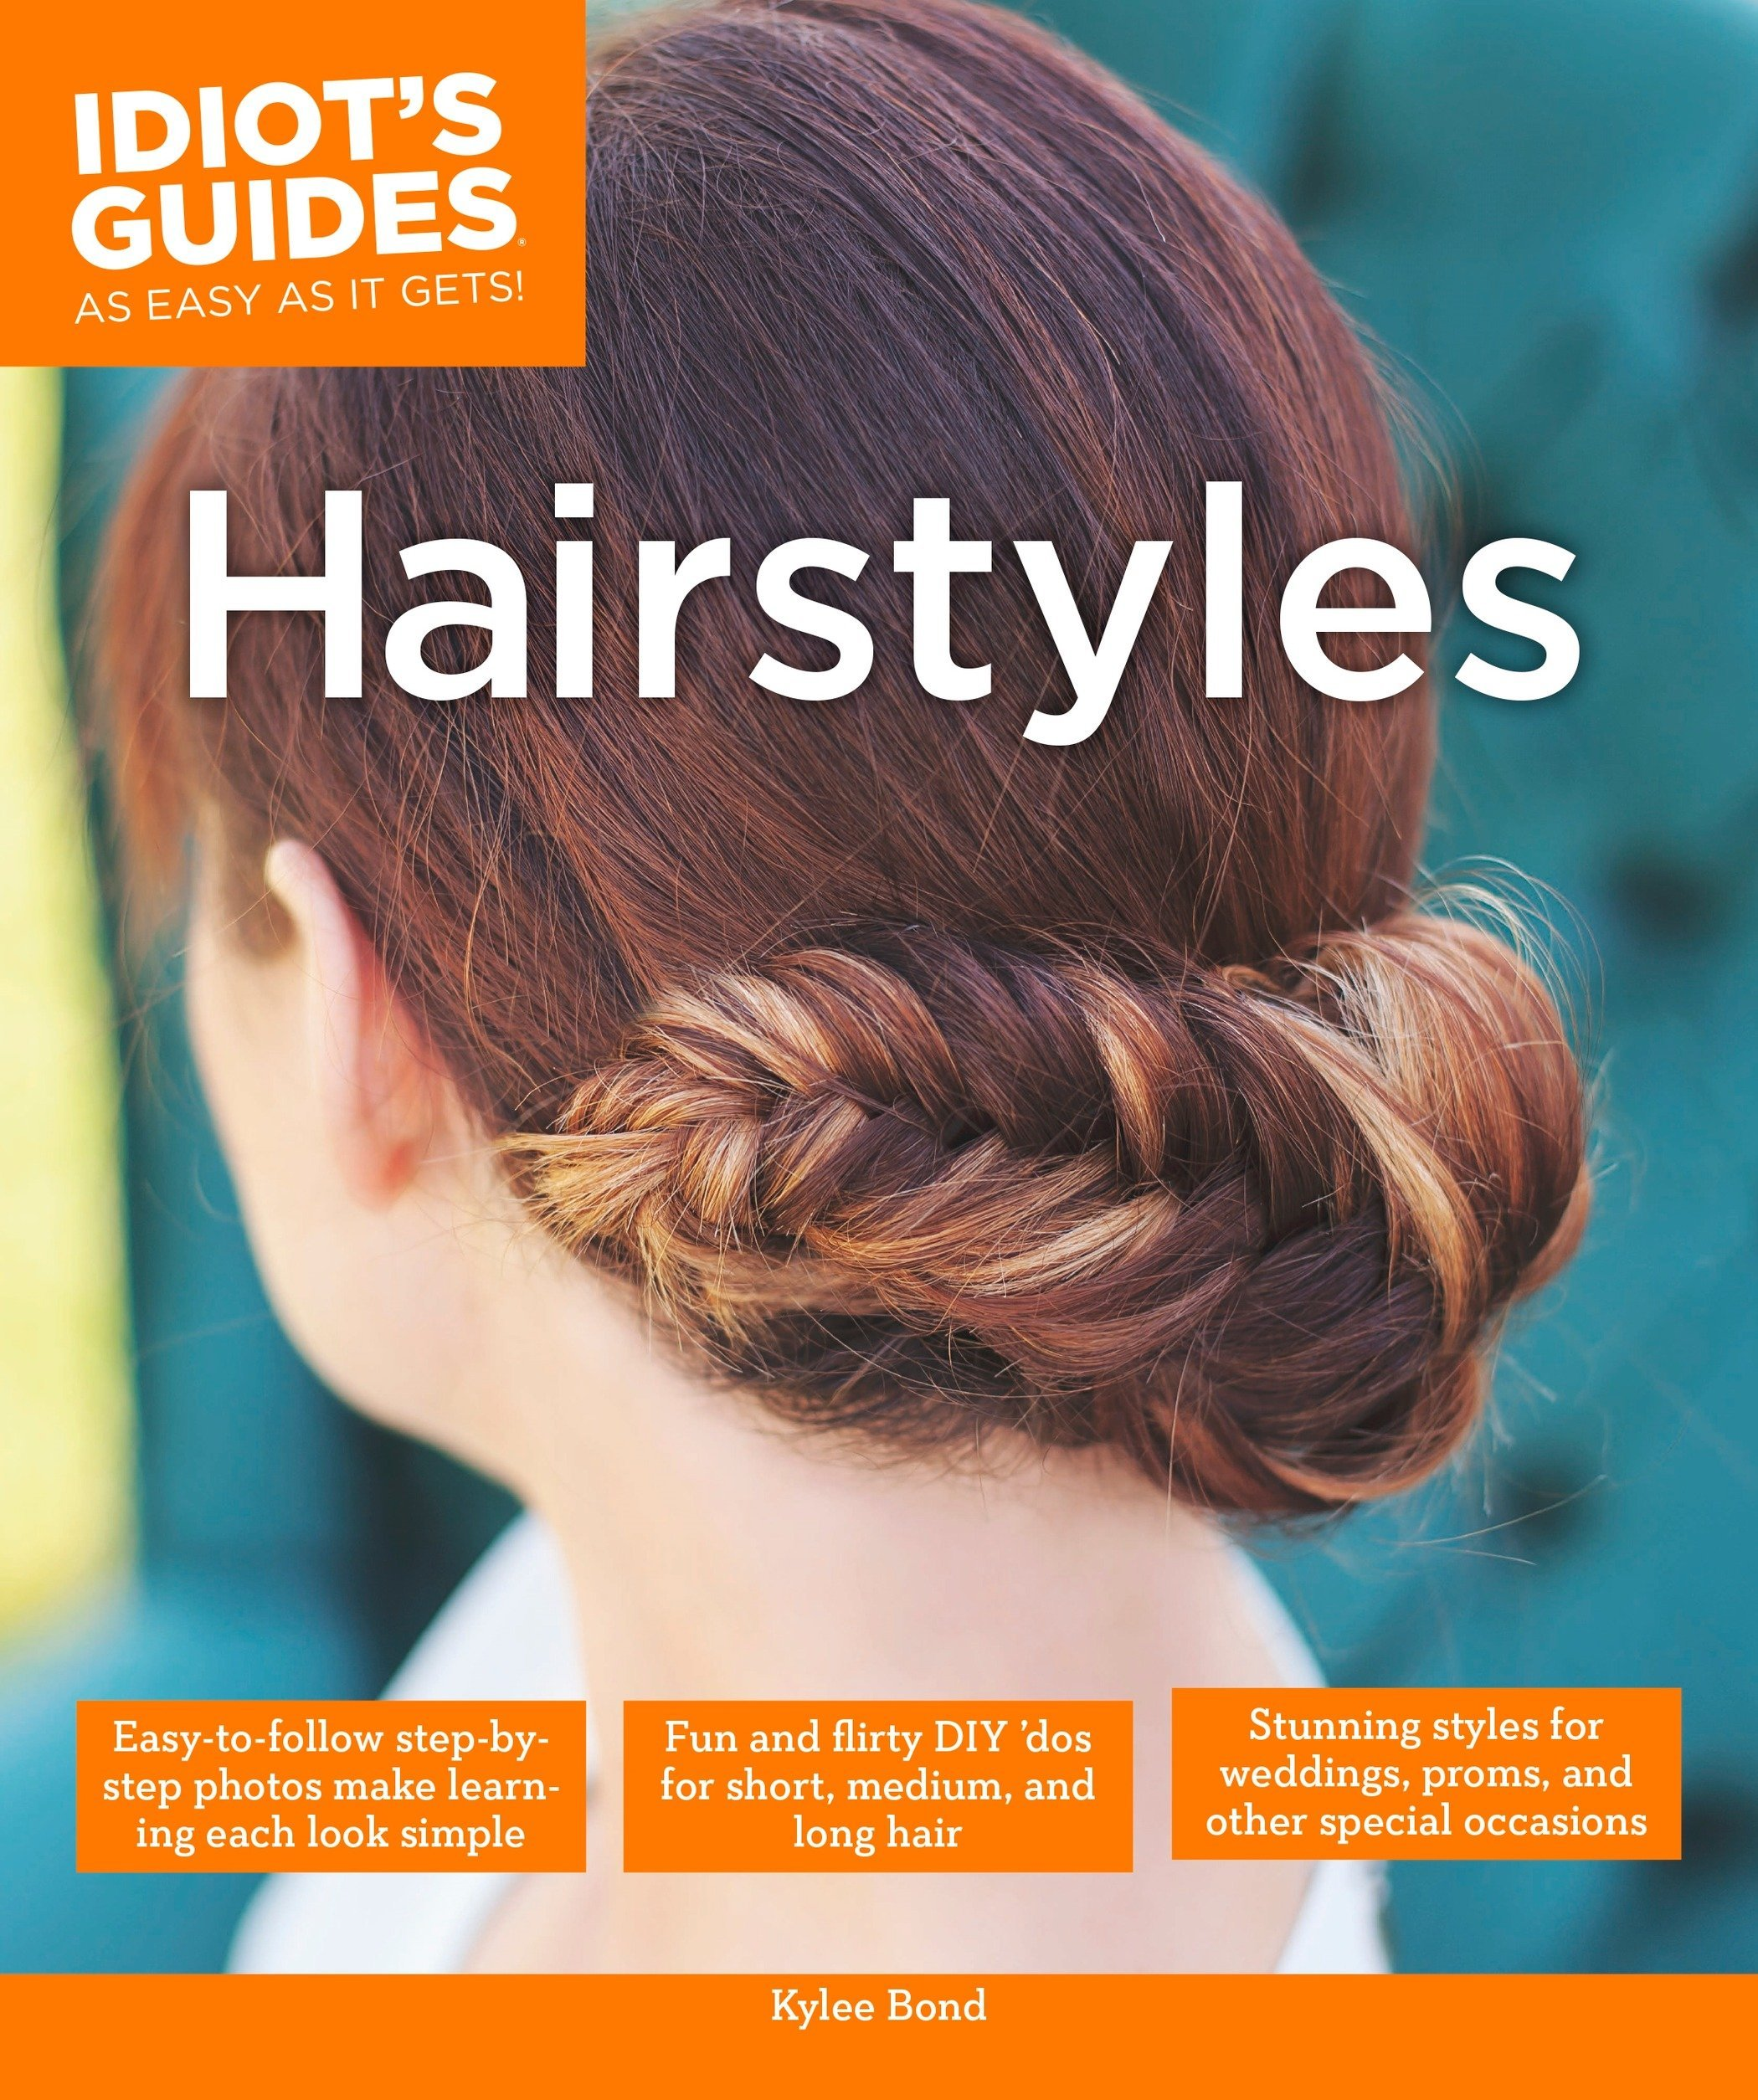 Hairstyles Stunning Styles For Weddings Proms And Other Special